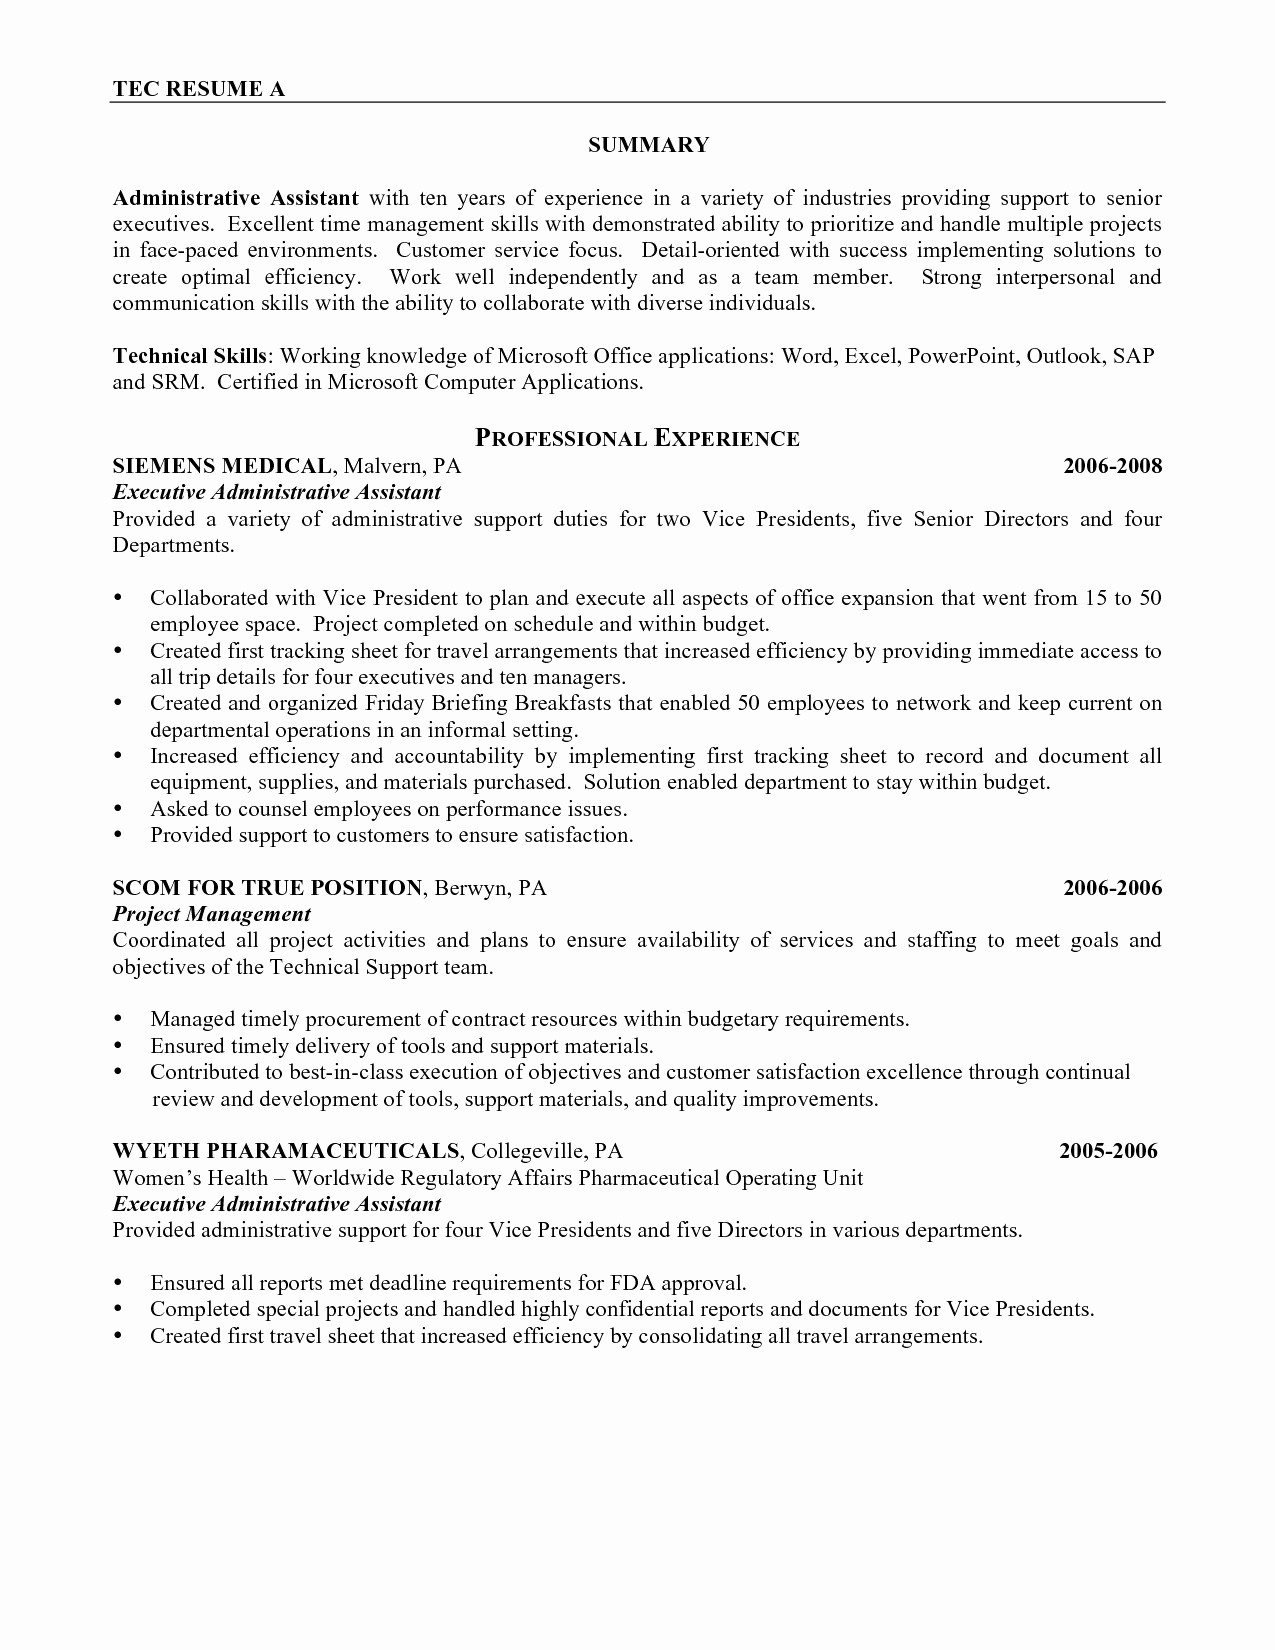 Customer Service Description for Resume - Customer Service Skills Resume New Customer Service Skills for